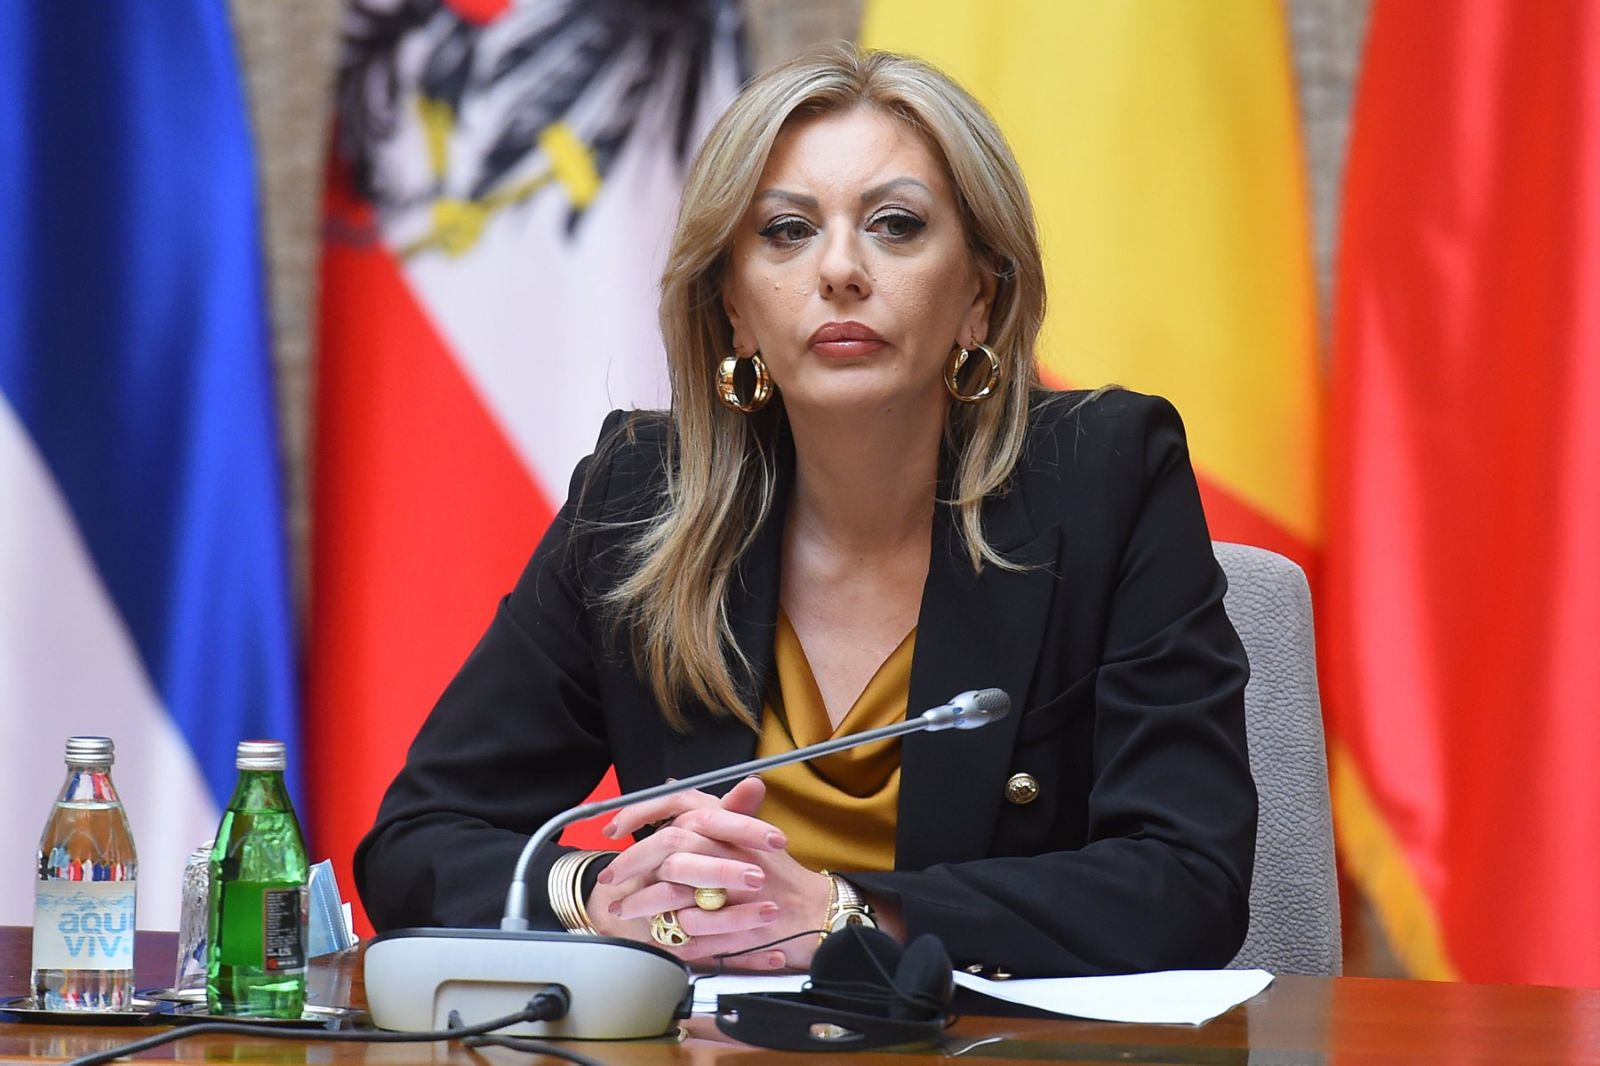 J. Joksimović: New Government to commit more strongly to reforms and European integration